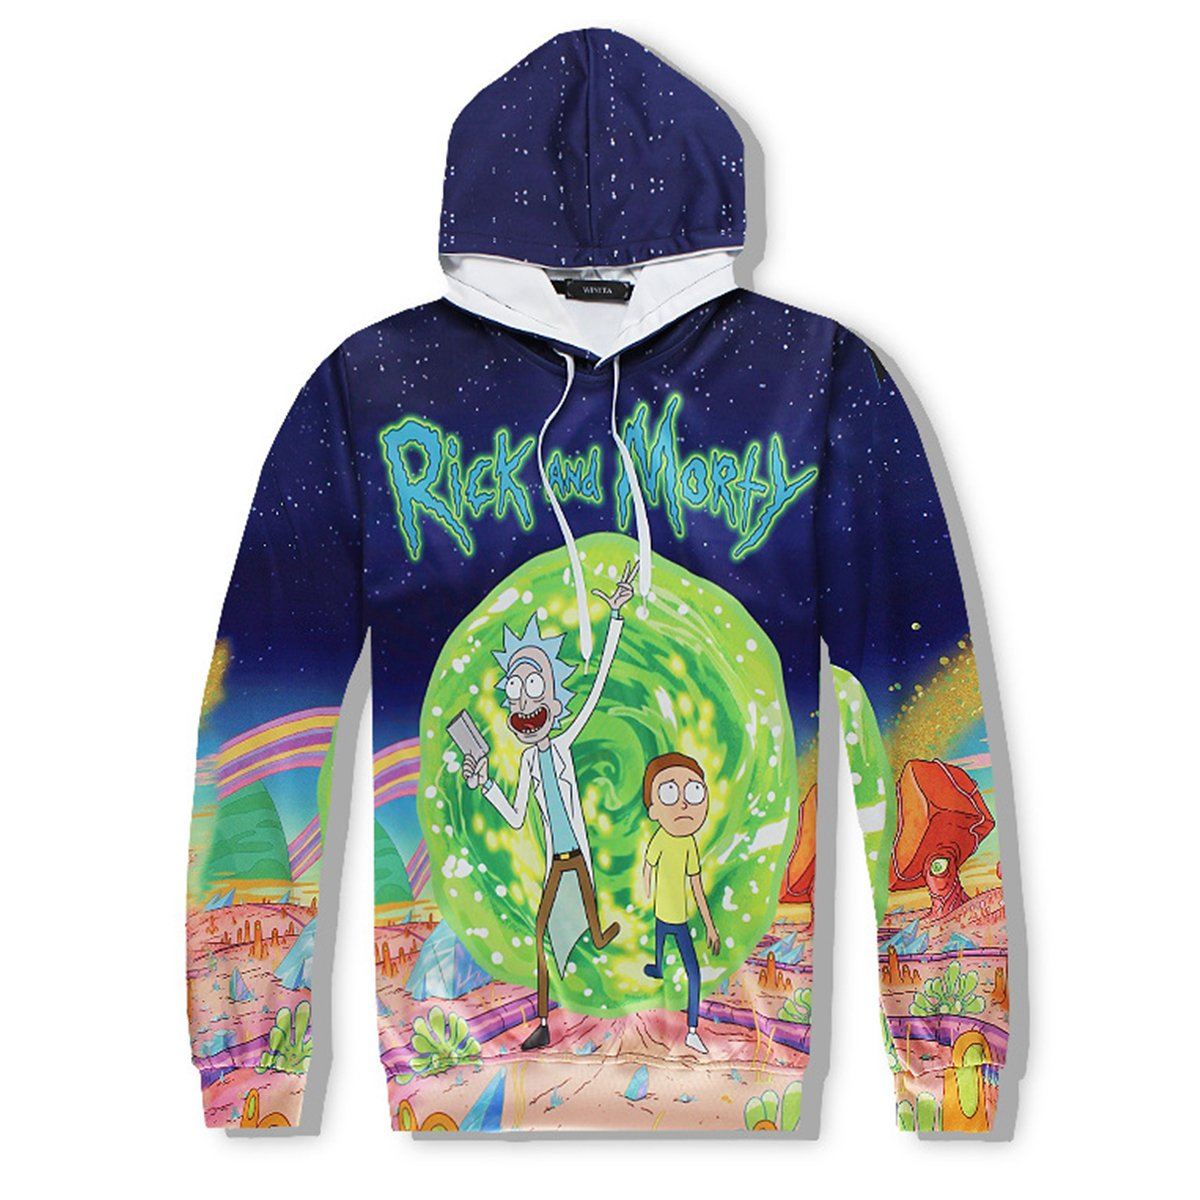 SM-TOPS Unisex Rick and Morty 3D Printed Hooded Tops Fashion Sweatshirts